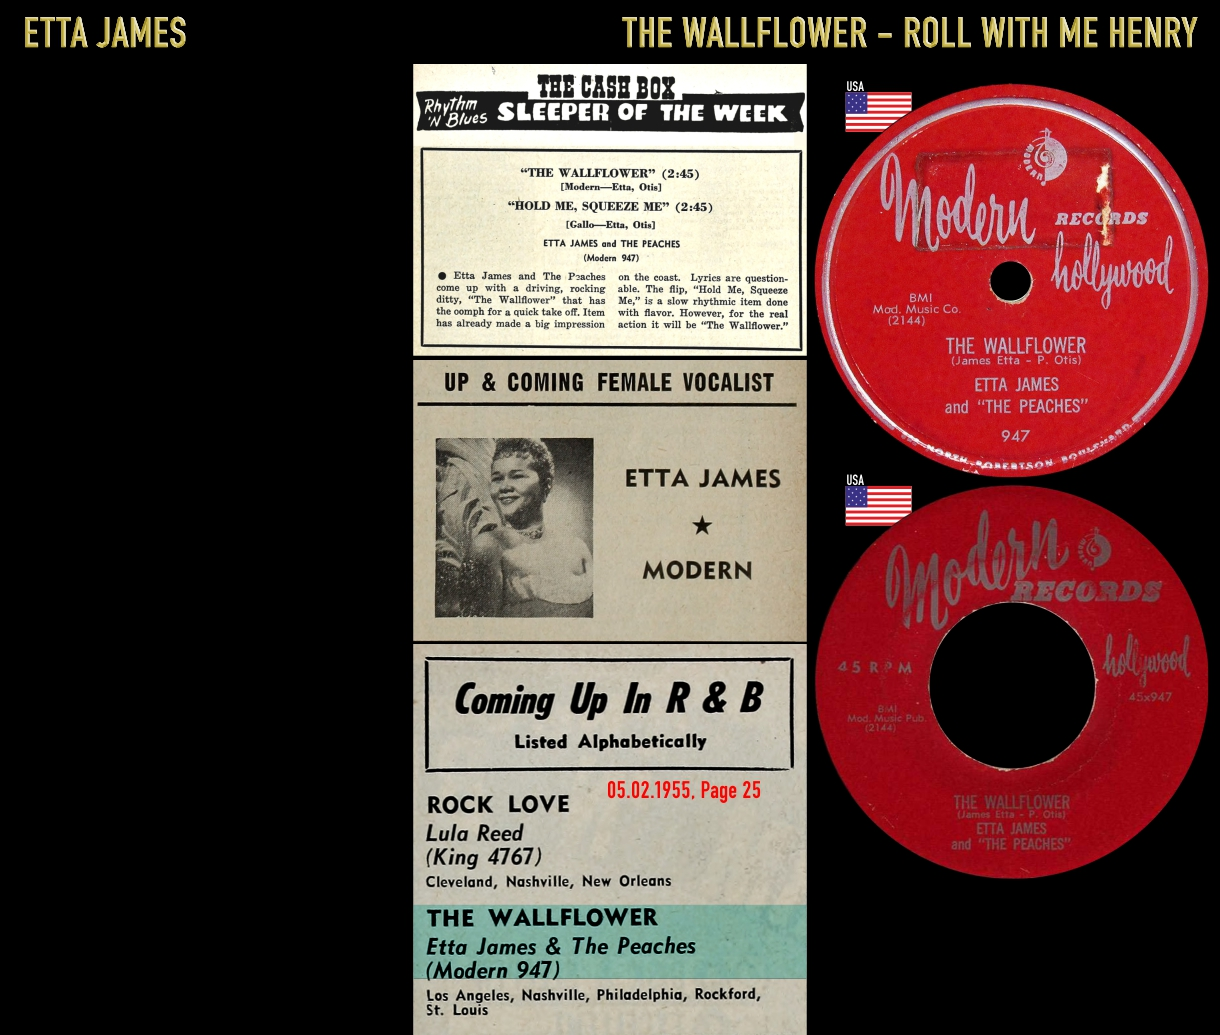 550219_Etta James_Roll With Me Henry